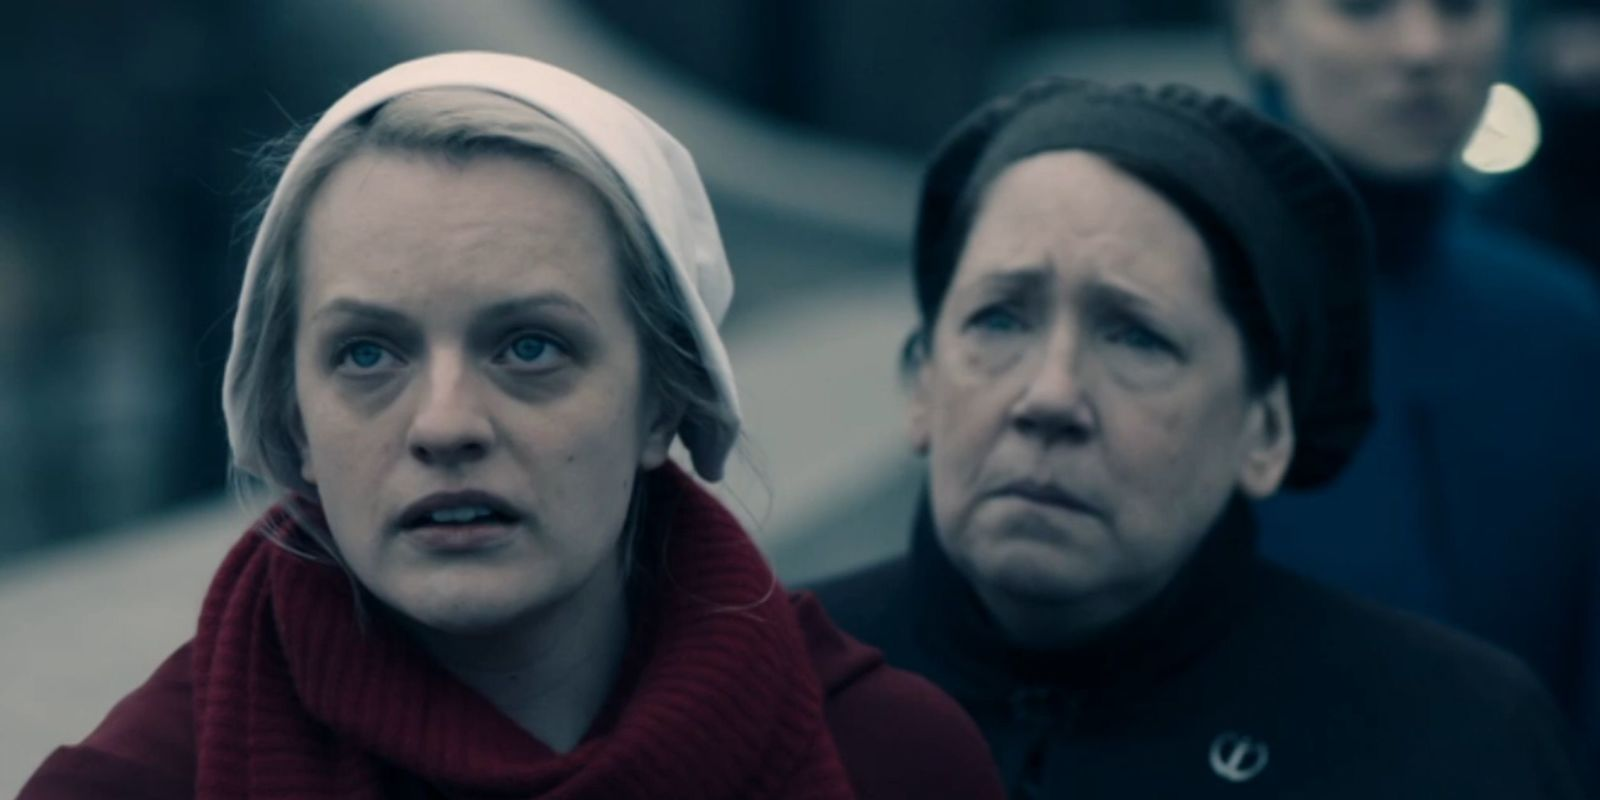 The Handmaid's Tale cast say the series 'could happen' in real life in behind-the-scenes clip